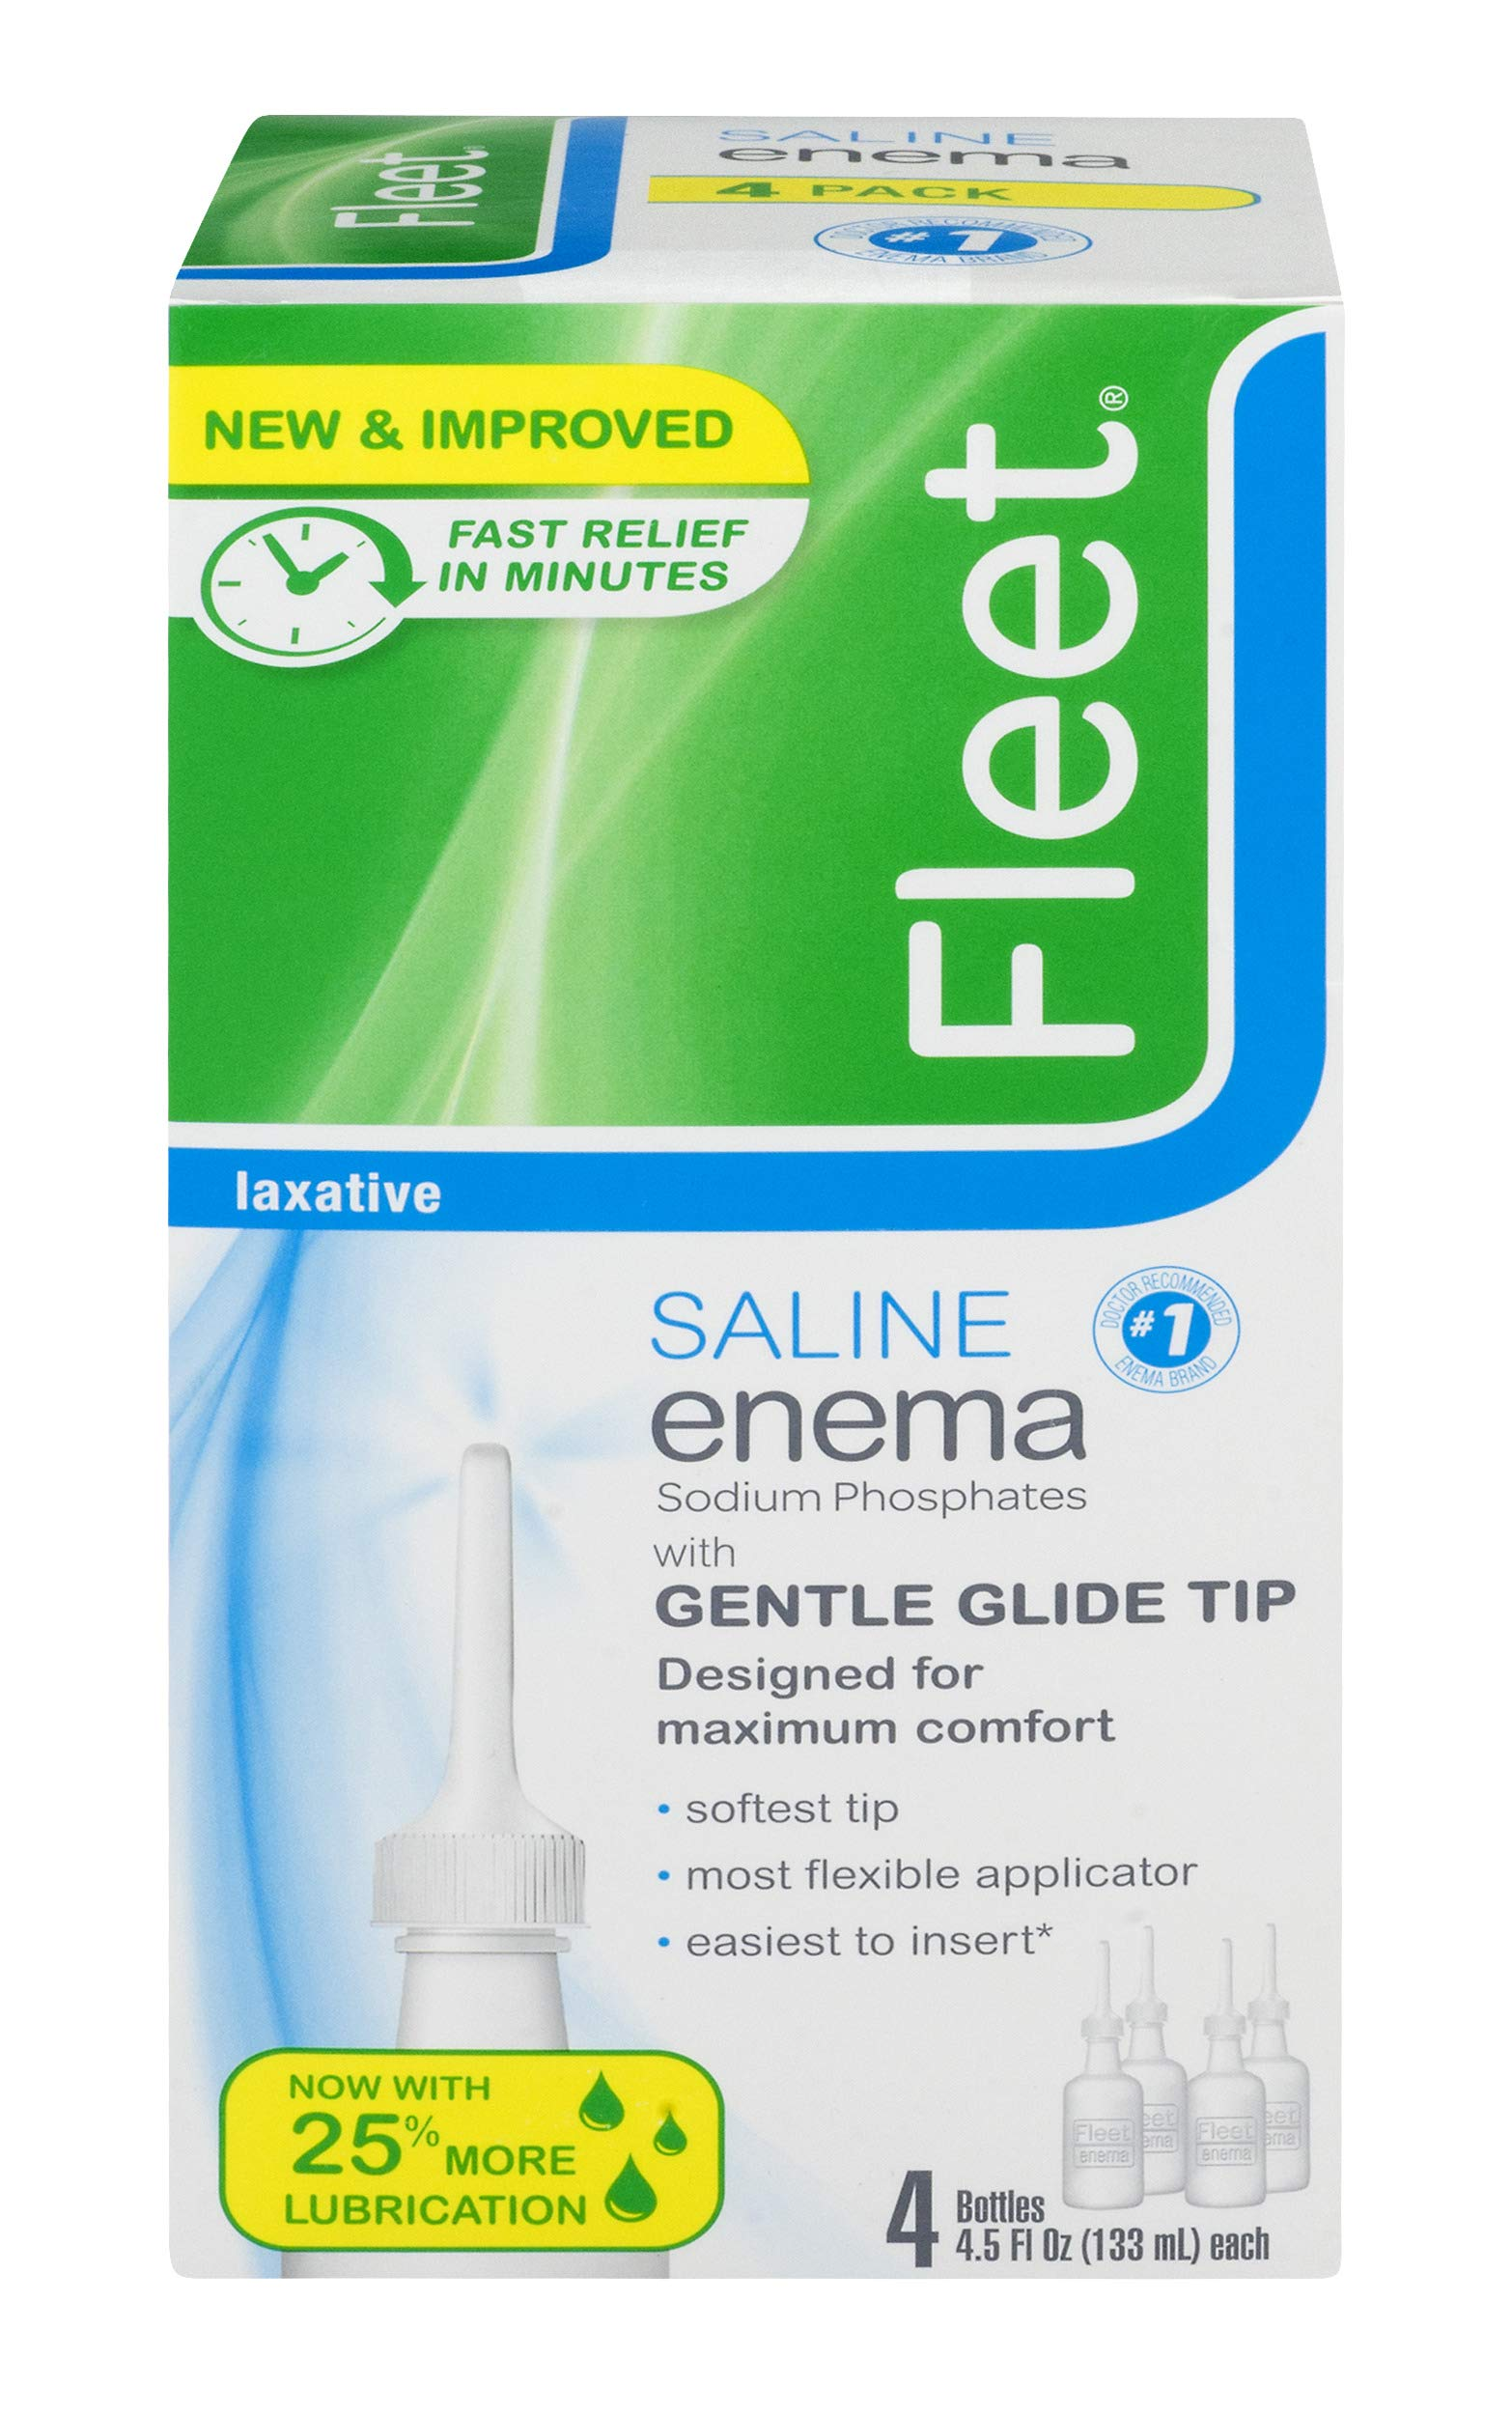 Fleet Laxative Saline Enema | 18 oz | Pack of 6 | Fast Constipation Relief in Minutes by Fleet